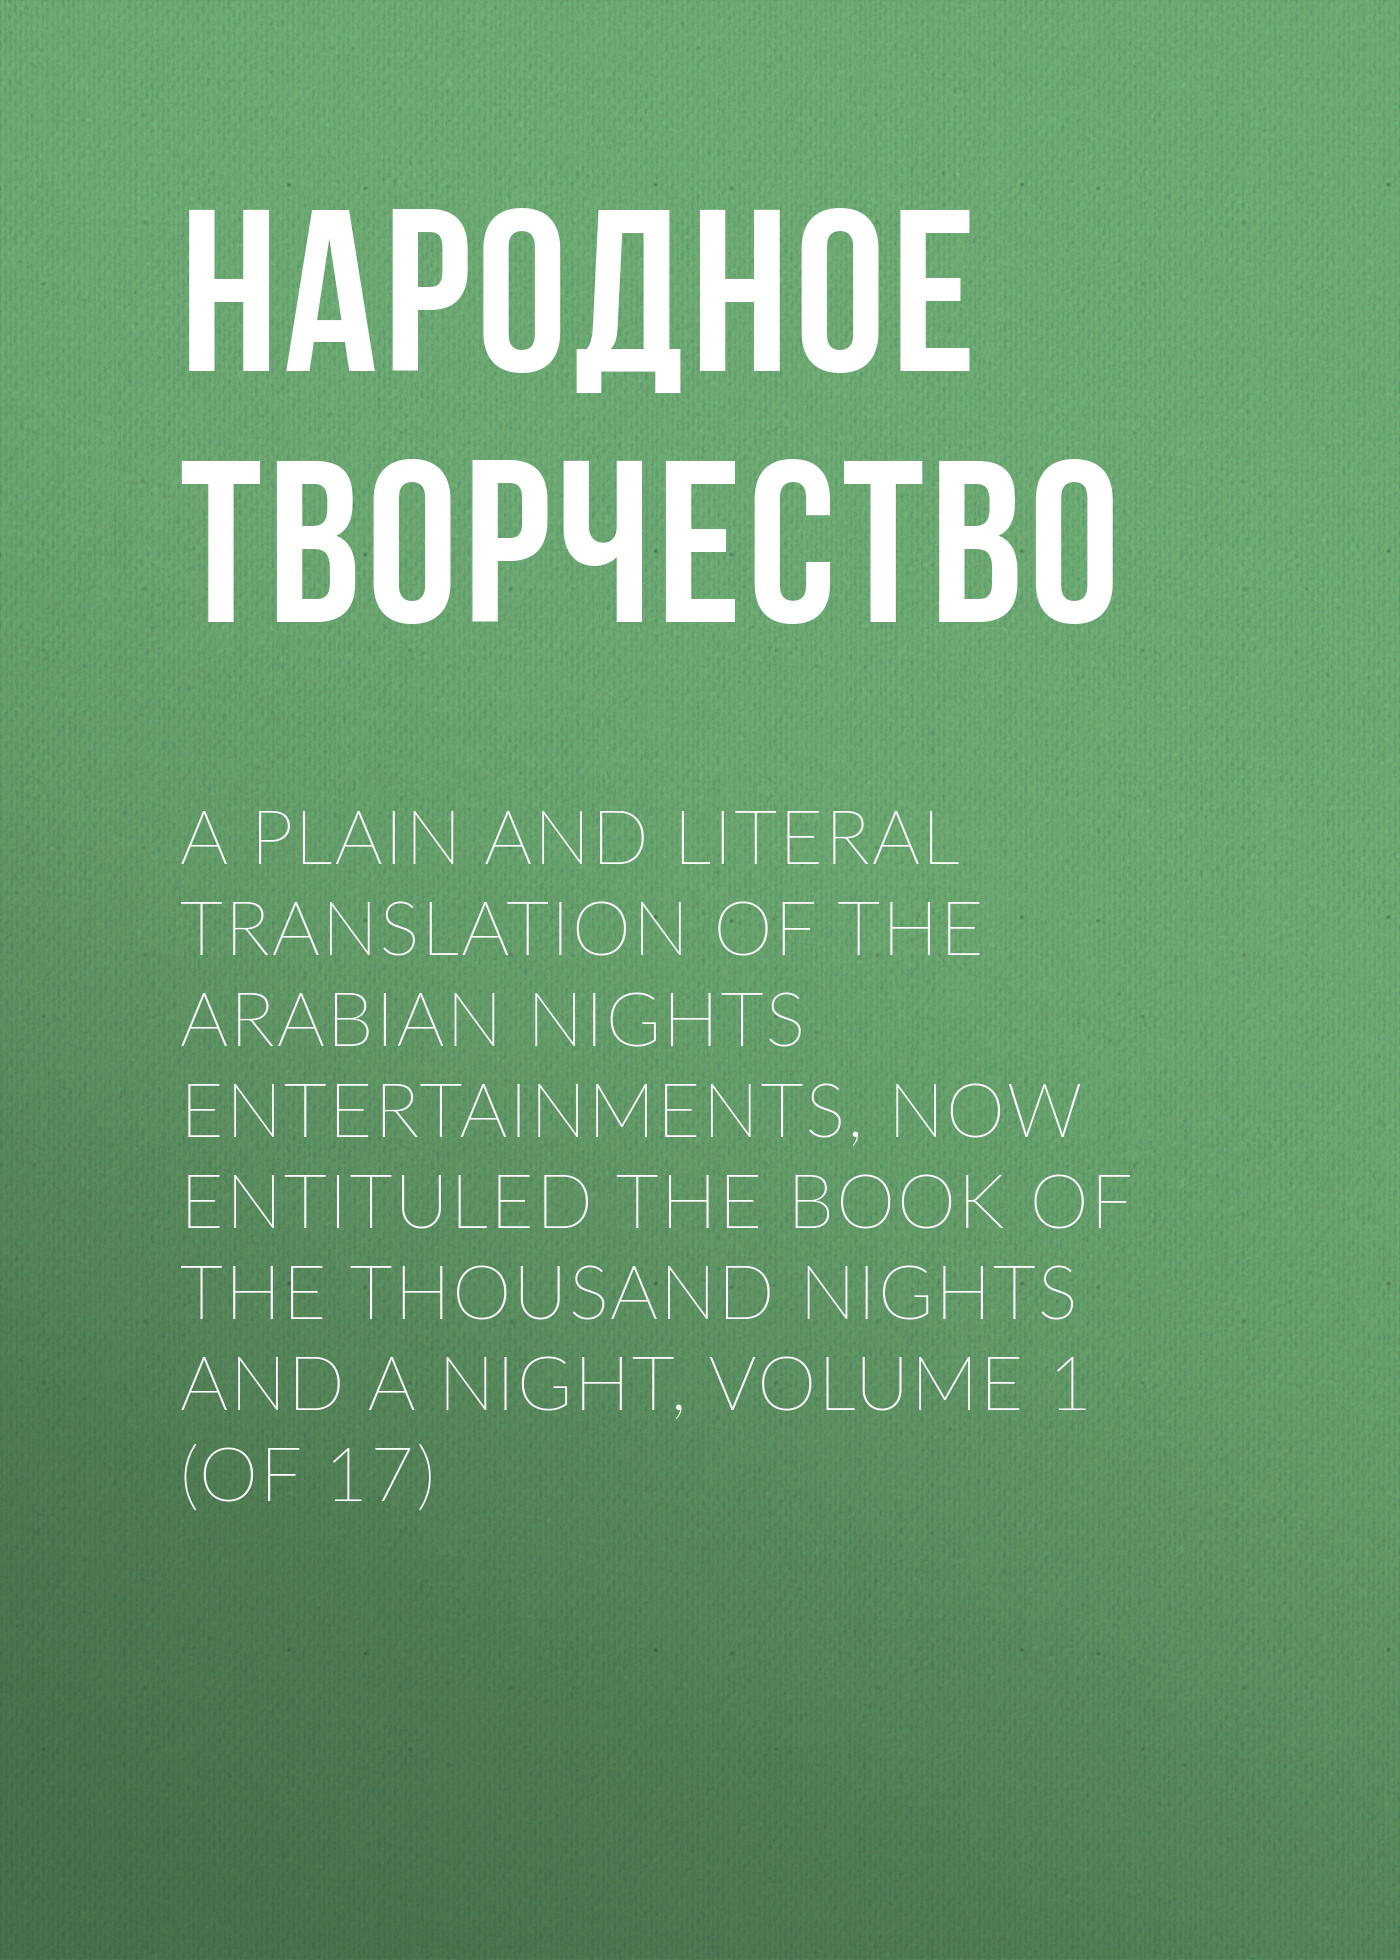 Народное творчество A plain and literal translation of the Arabian nights entertainments, now entituled The Book of the Thousand Nights and a Night, Volume 1 (of 17) sades a6 computer gaming headphones 7 1 surround sound stereo over ear game headset with mic breathing led lights for pc gamer